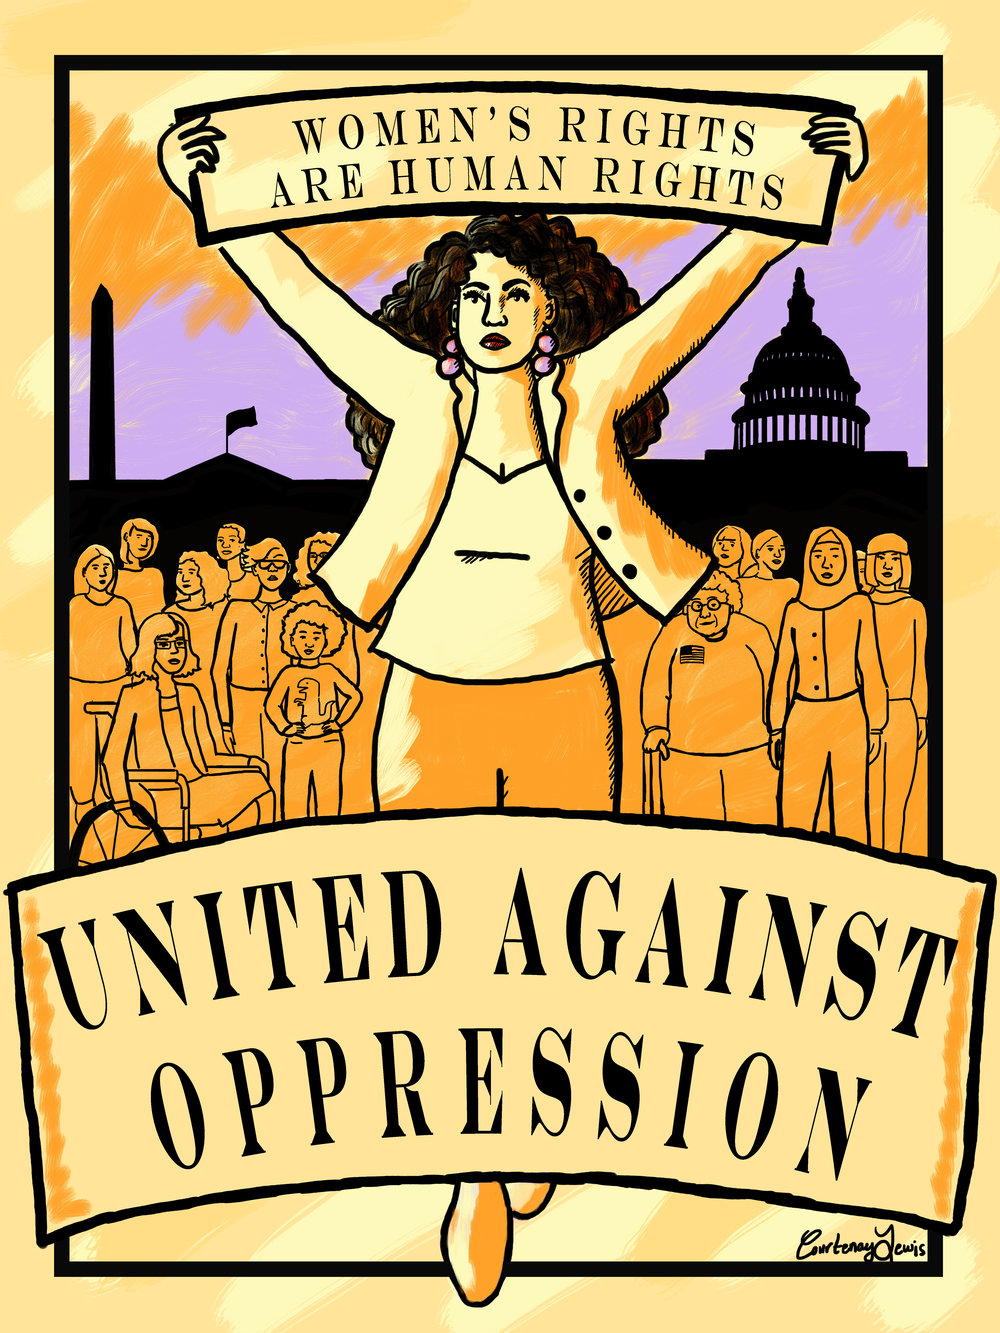 """Poster selected for the Amplifier Foundation's """"Hear Our Voice"""" exhibition celebrating the Women's March on Washington (Jan. 2017)"""